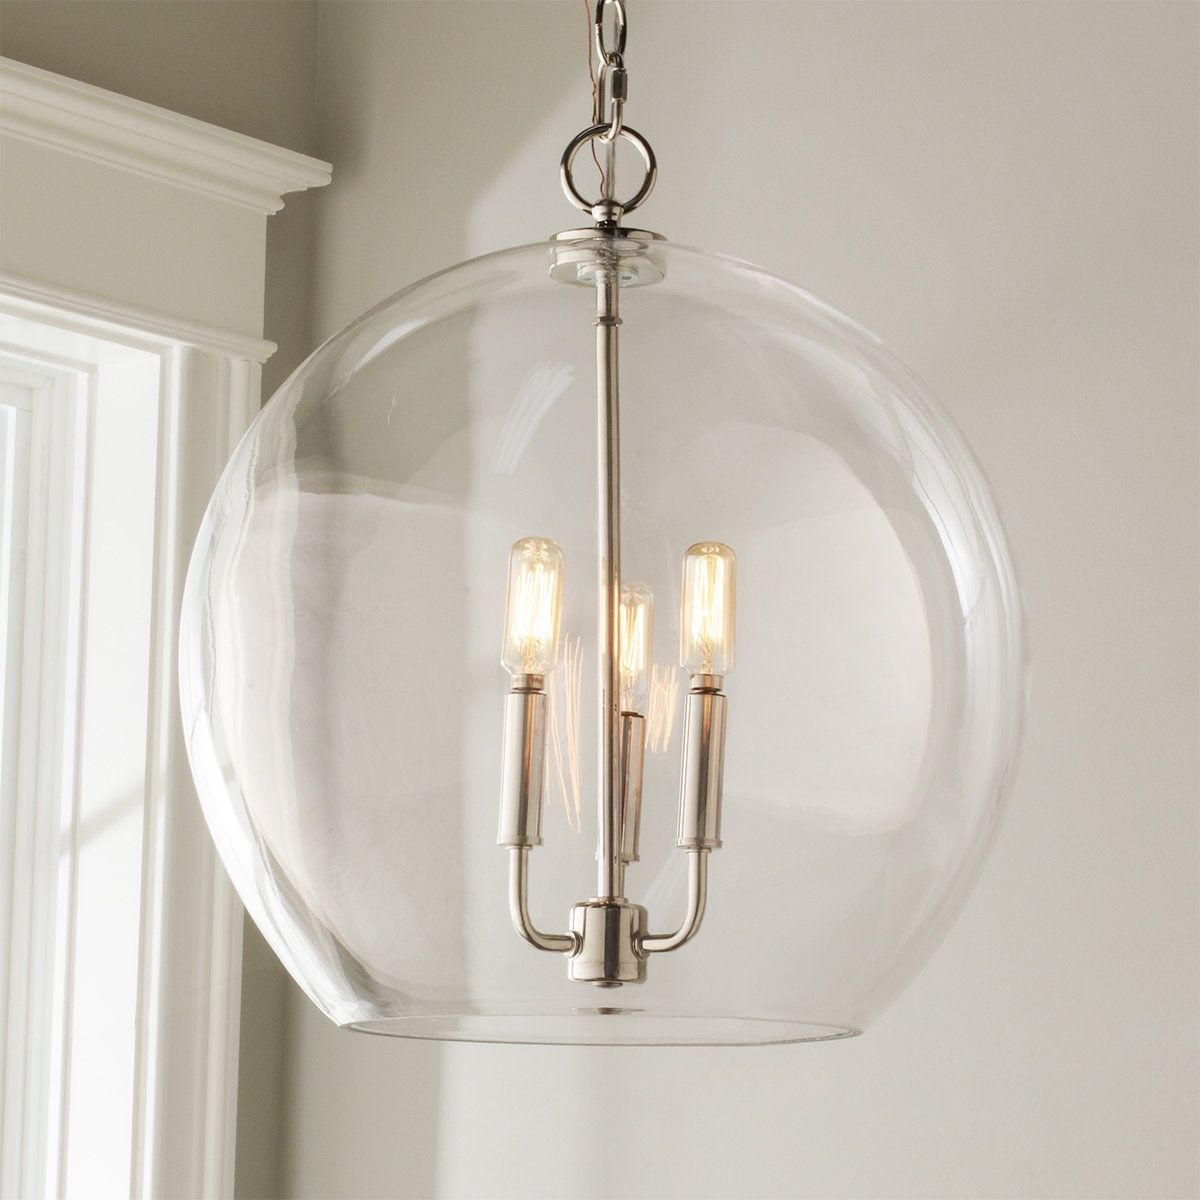 Clearly a winner in versatility and simplicity! This clear glass dome and 3 light cluster of candlelights brightens kitchen tables, foyers and more.